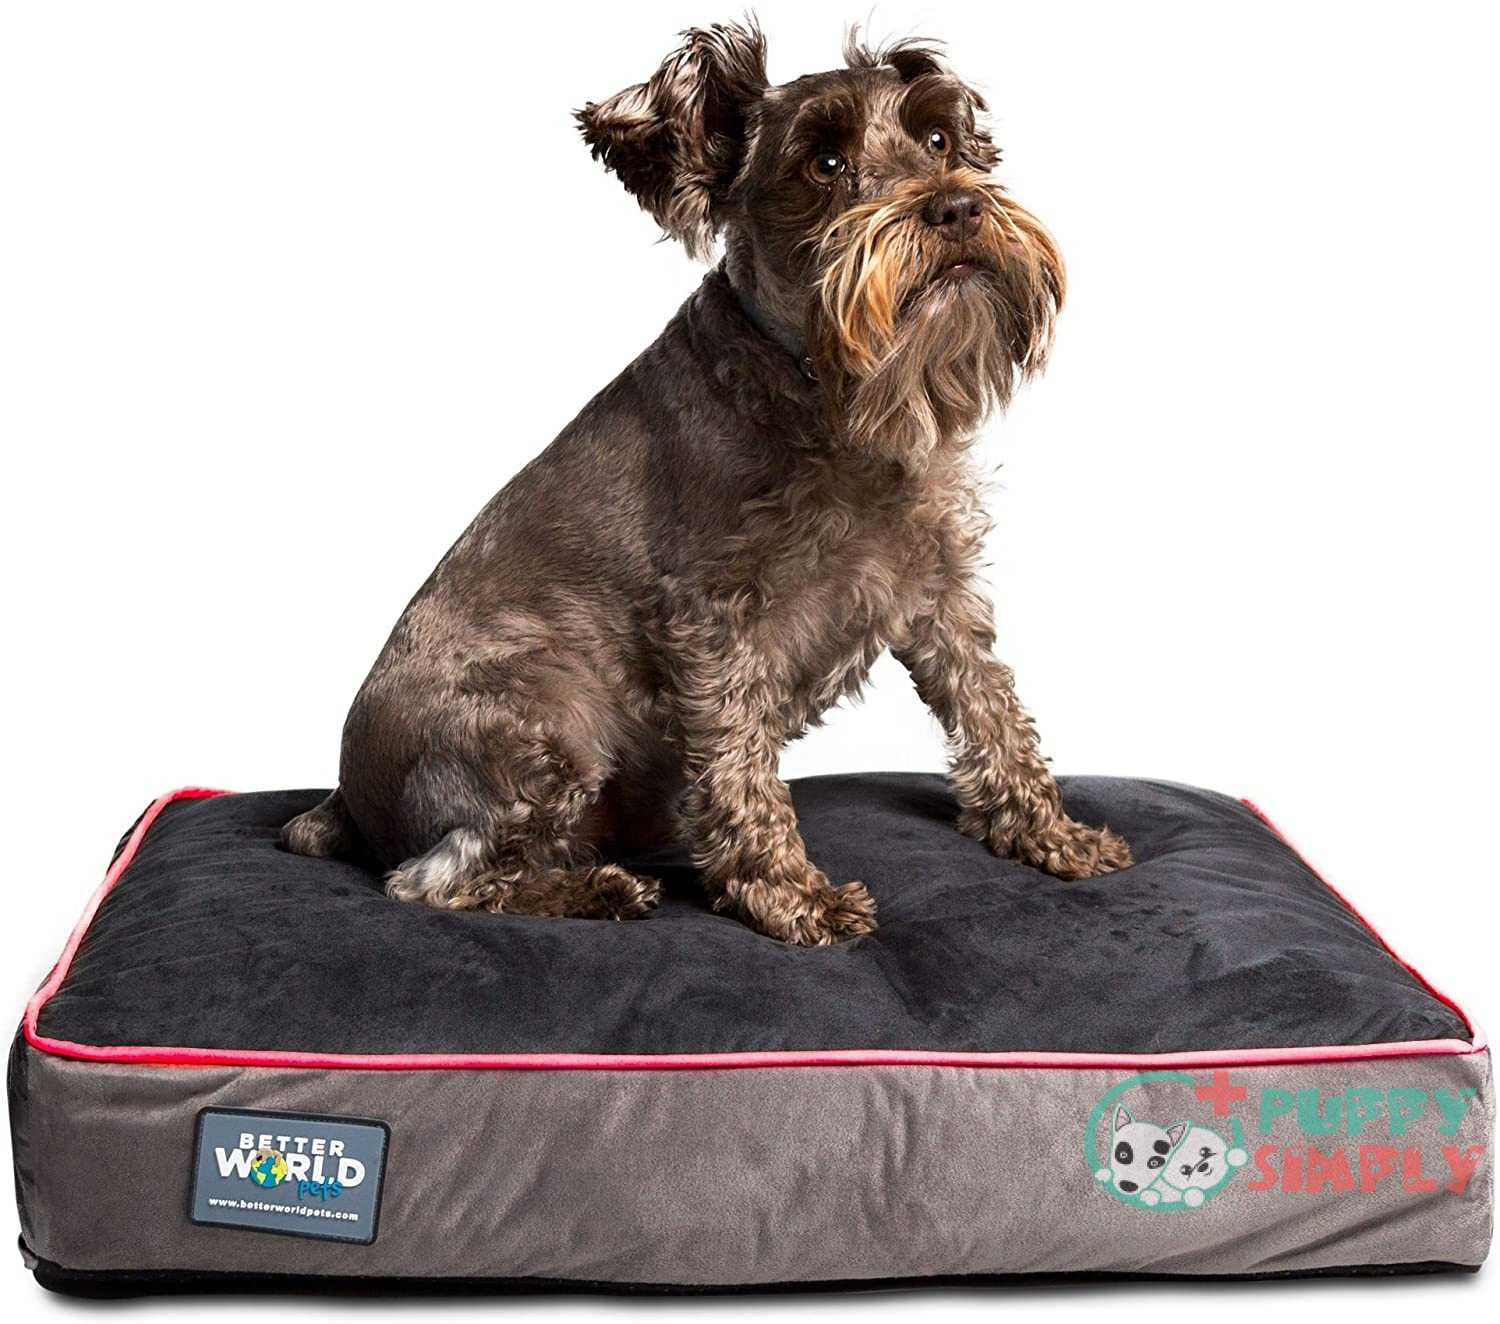 Better World Pets 5-inch Thick